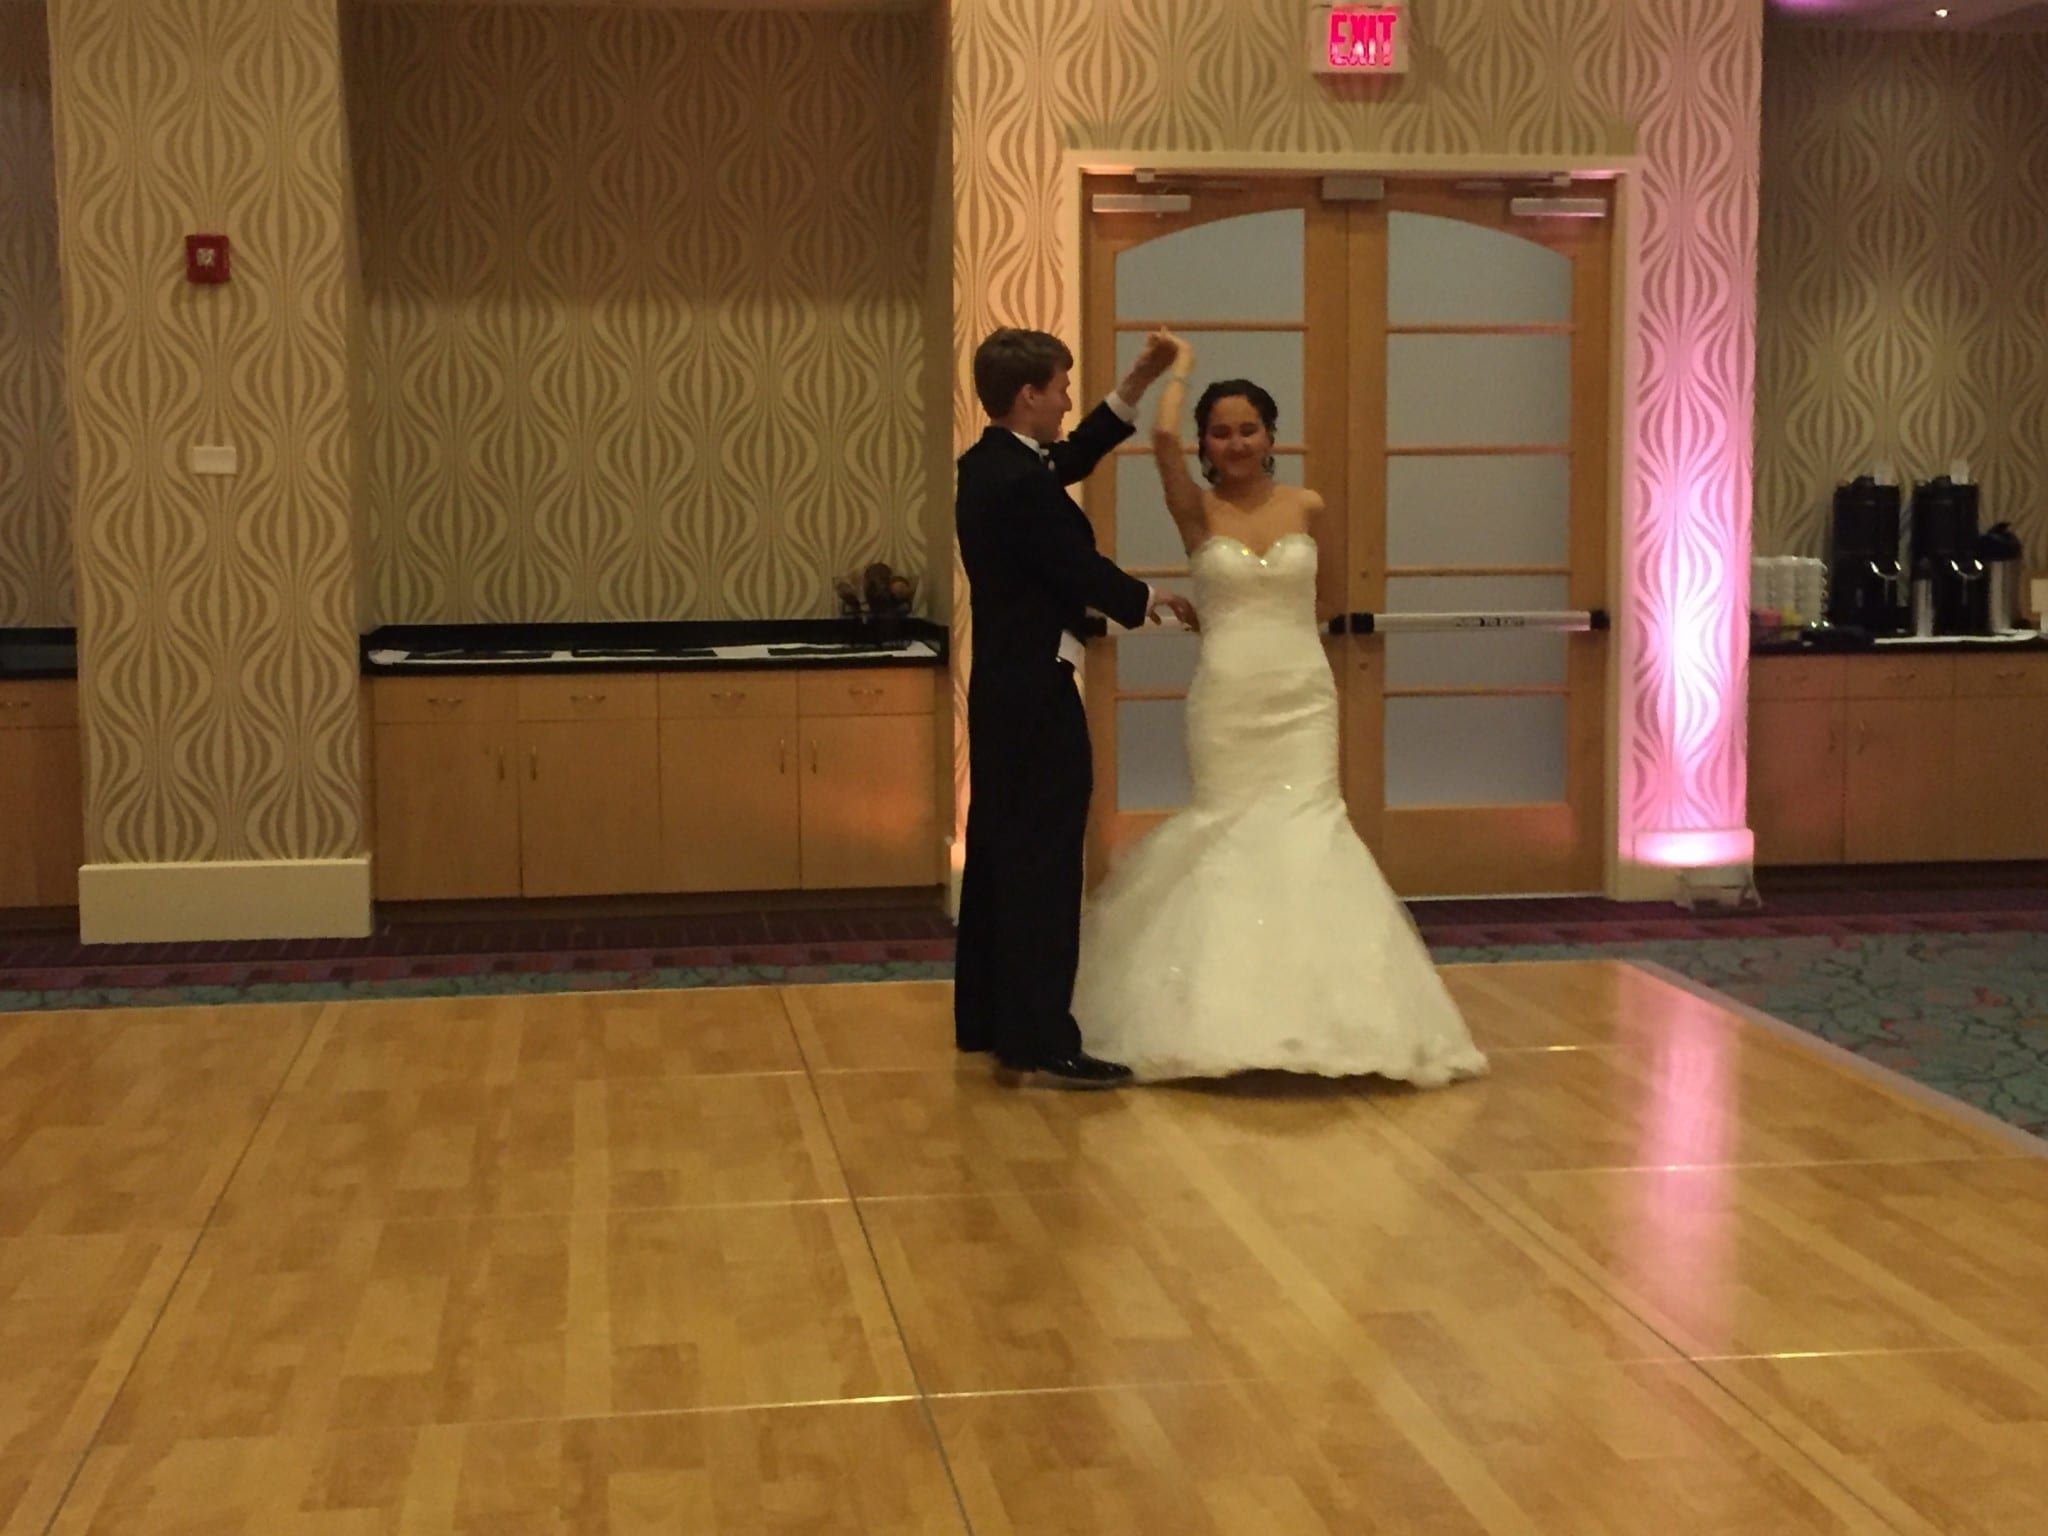 Lina & Emerson's First Dance